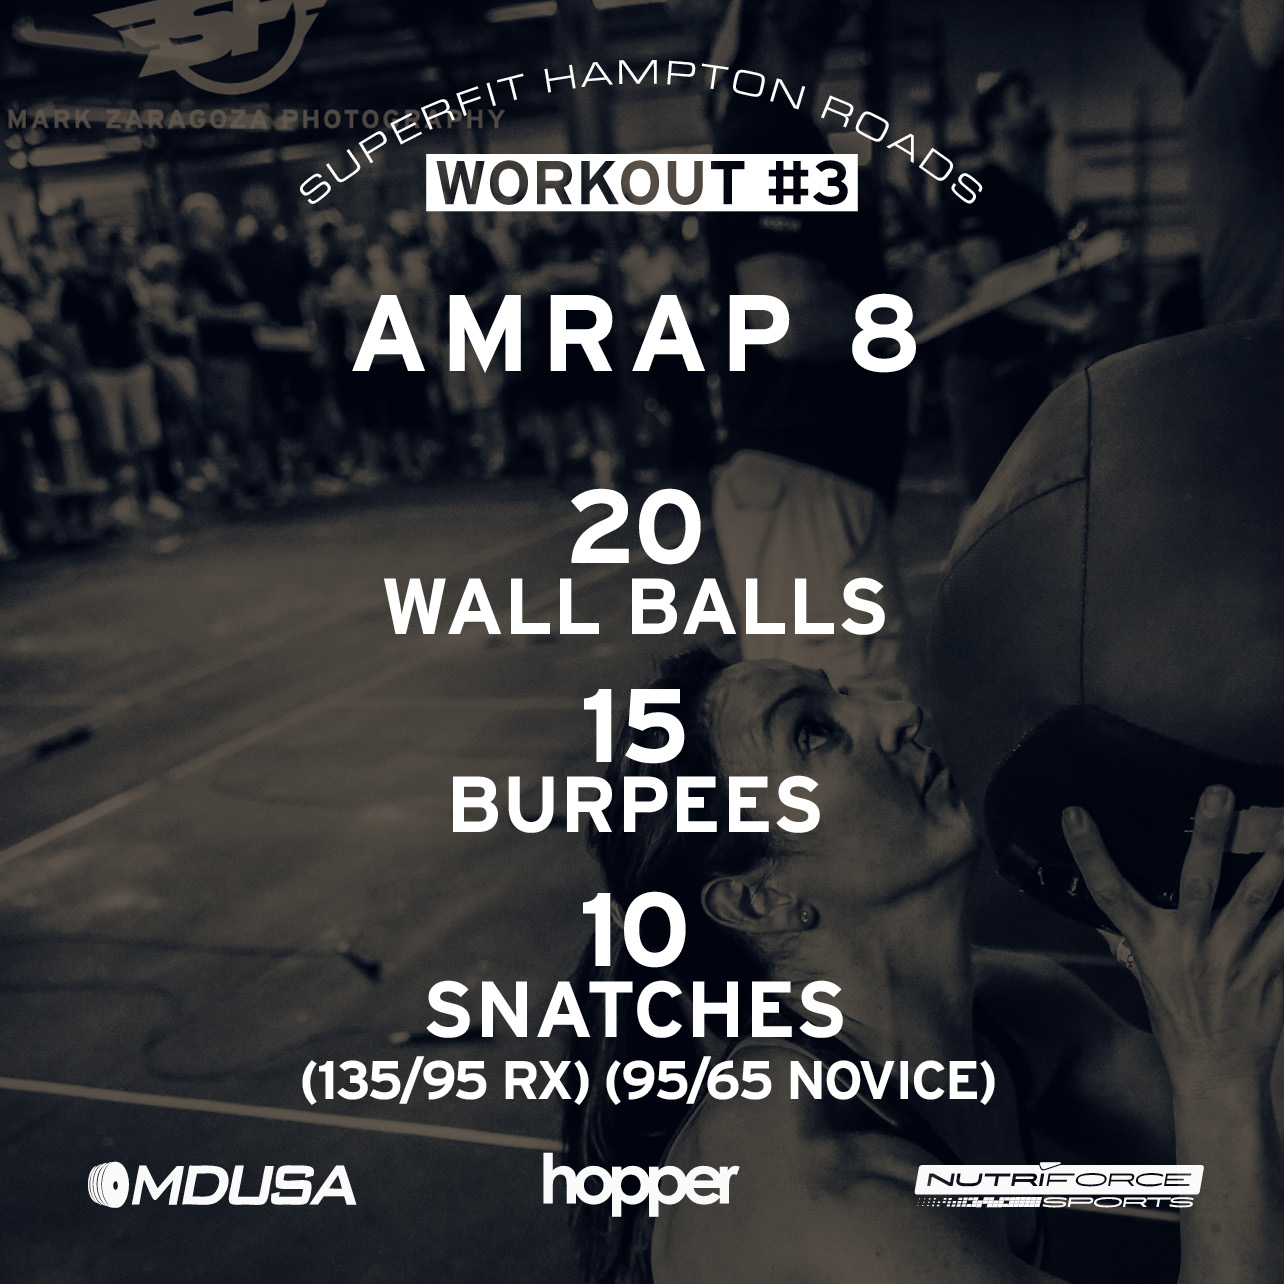 2014_superfit_hr_wod3